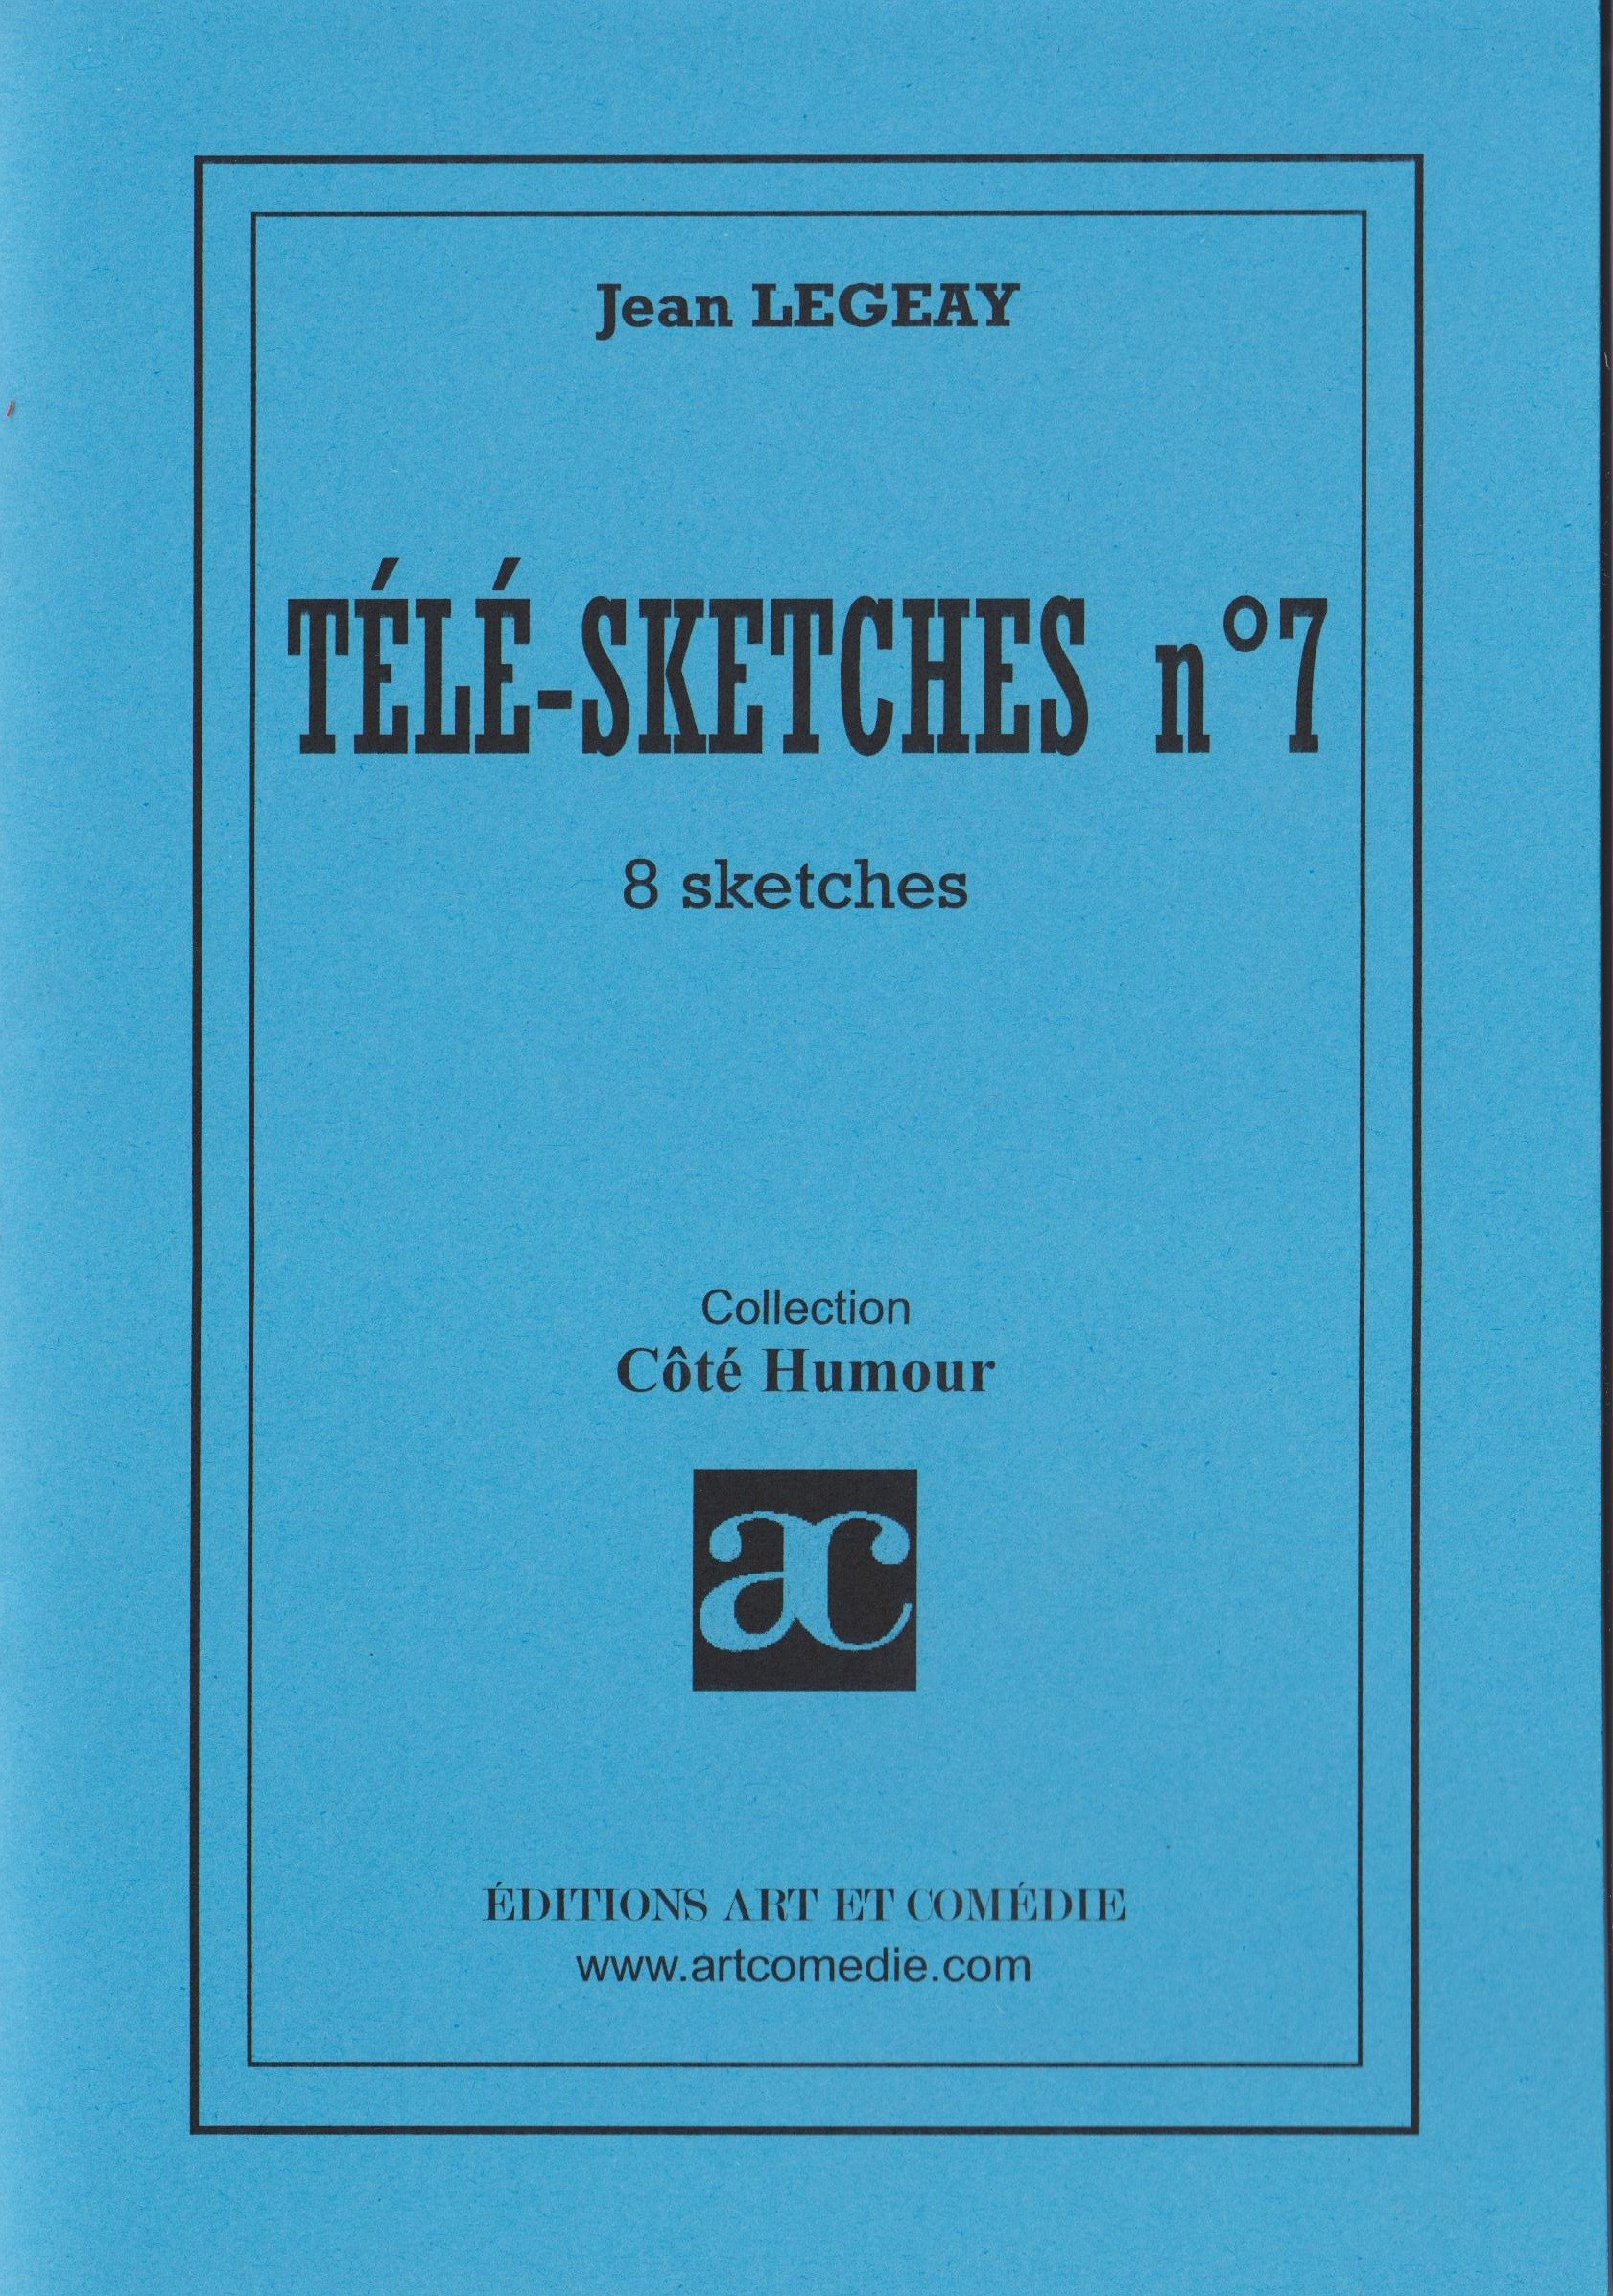 Télé sketches n°7